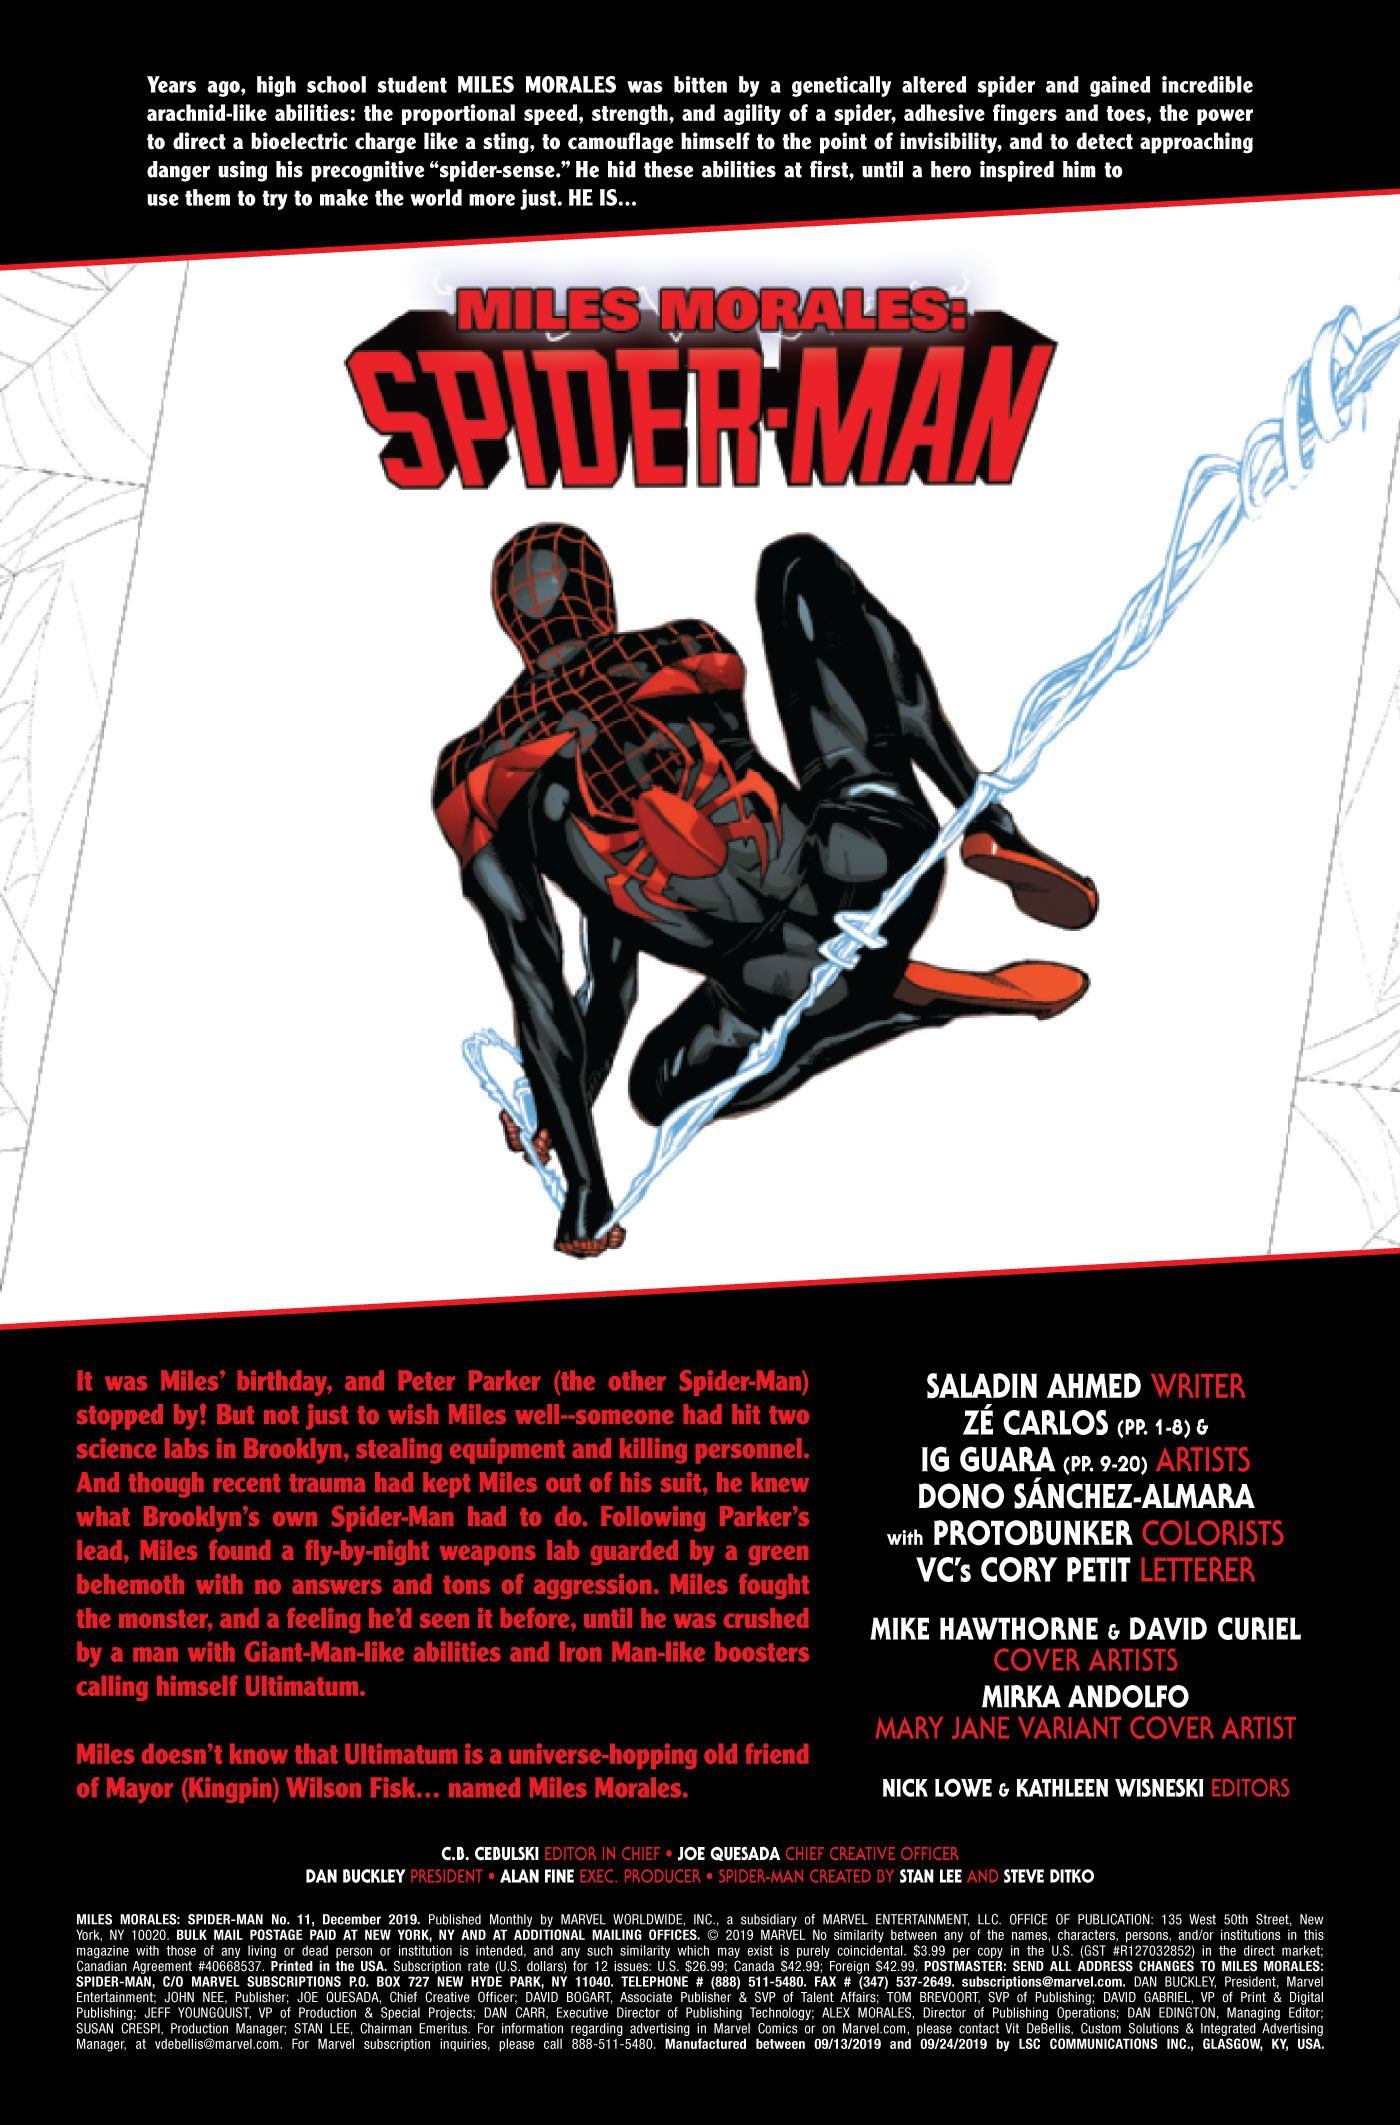 Miles Morales: Spider-Man #11 Introduces a New Supervillain Team